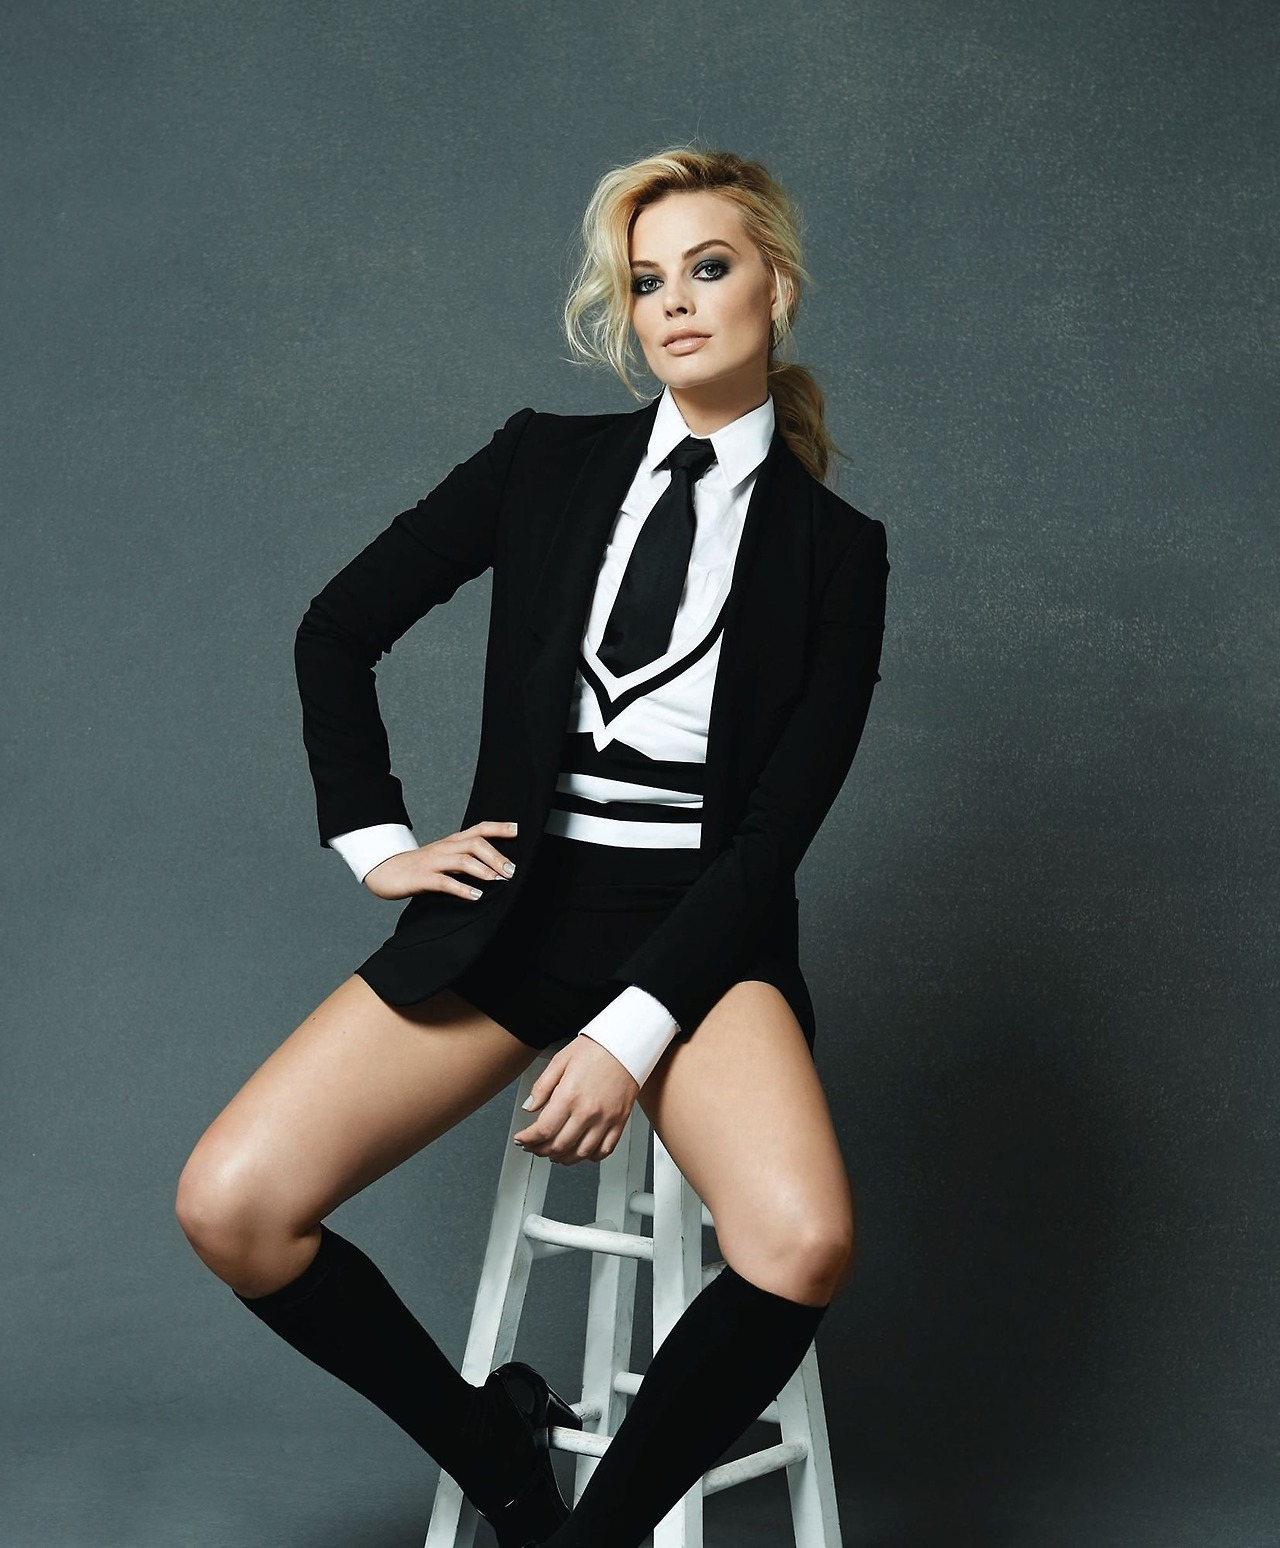 Margot Robbie Net Worth, Biography, Movies, Boyfriends, Pictures and Wallpapers 26